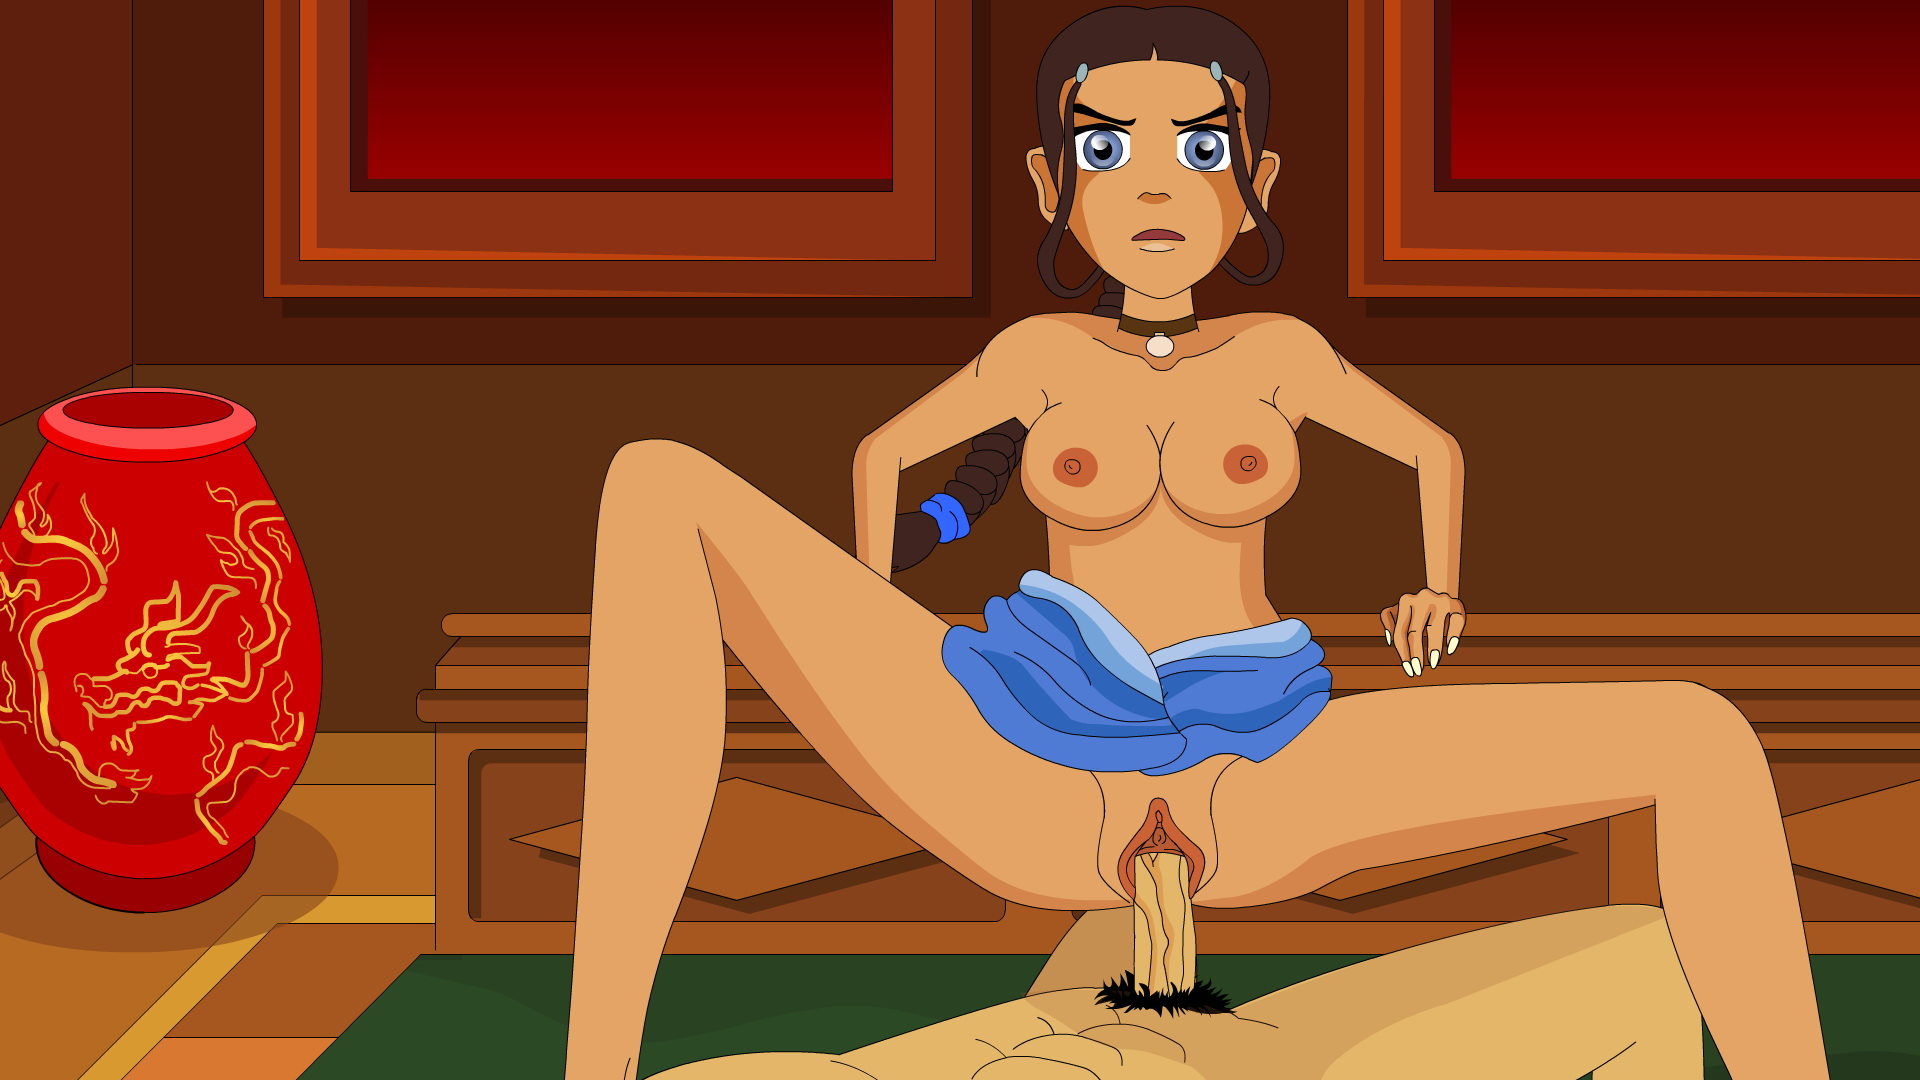 Naked lady cartoon exploited scene